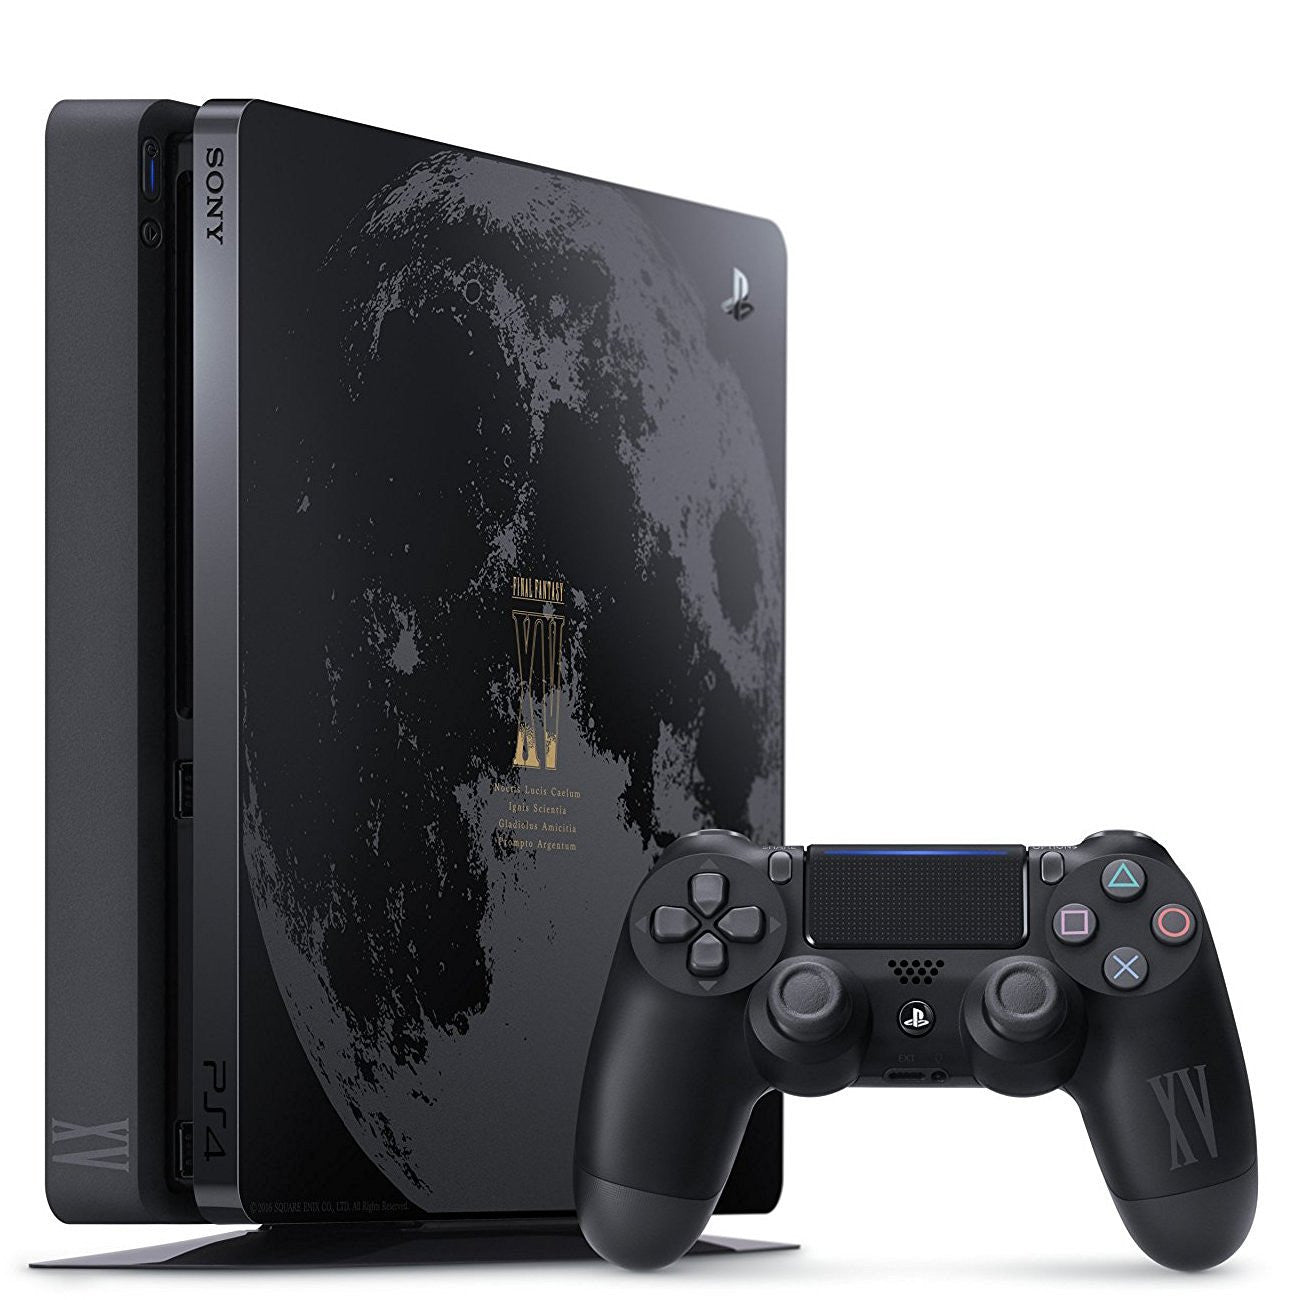 Image 1 for PlayStation 4 FINAL FANTASY XV LUNA EDITION (1TB)